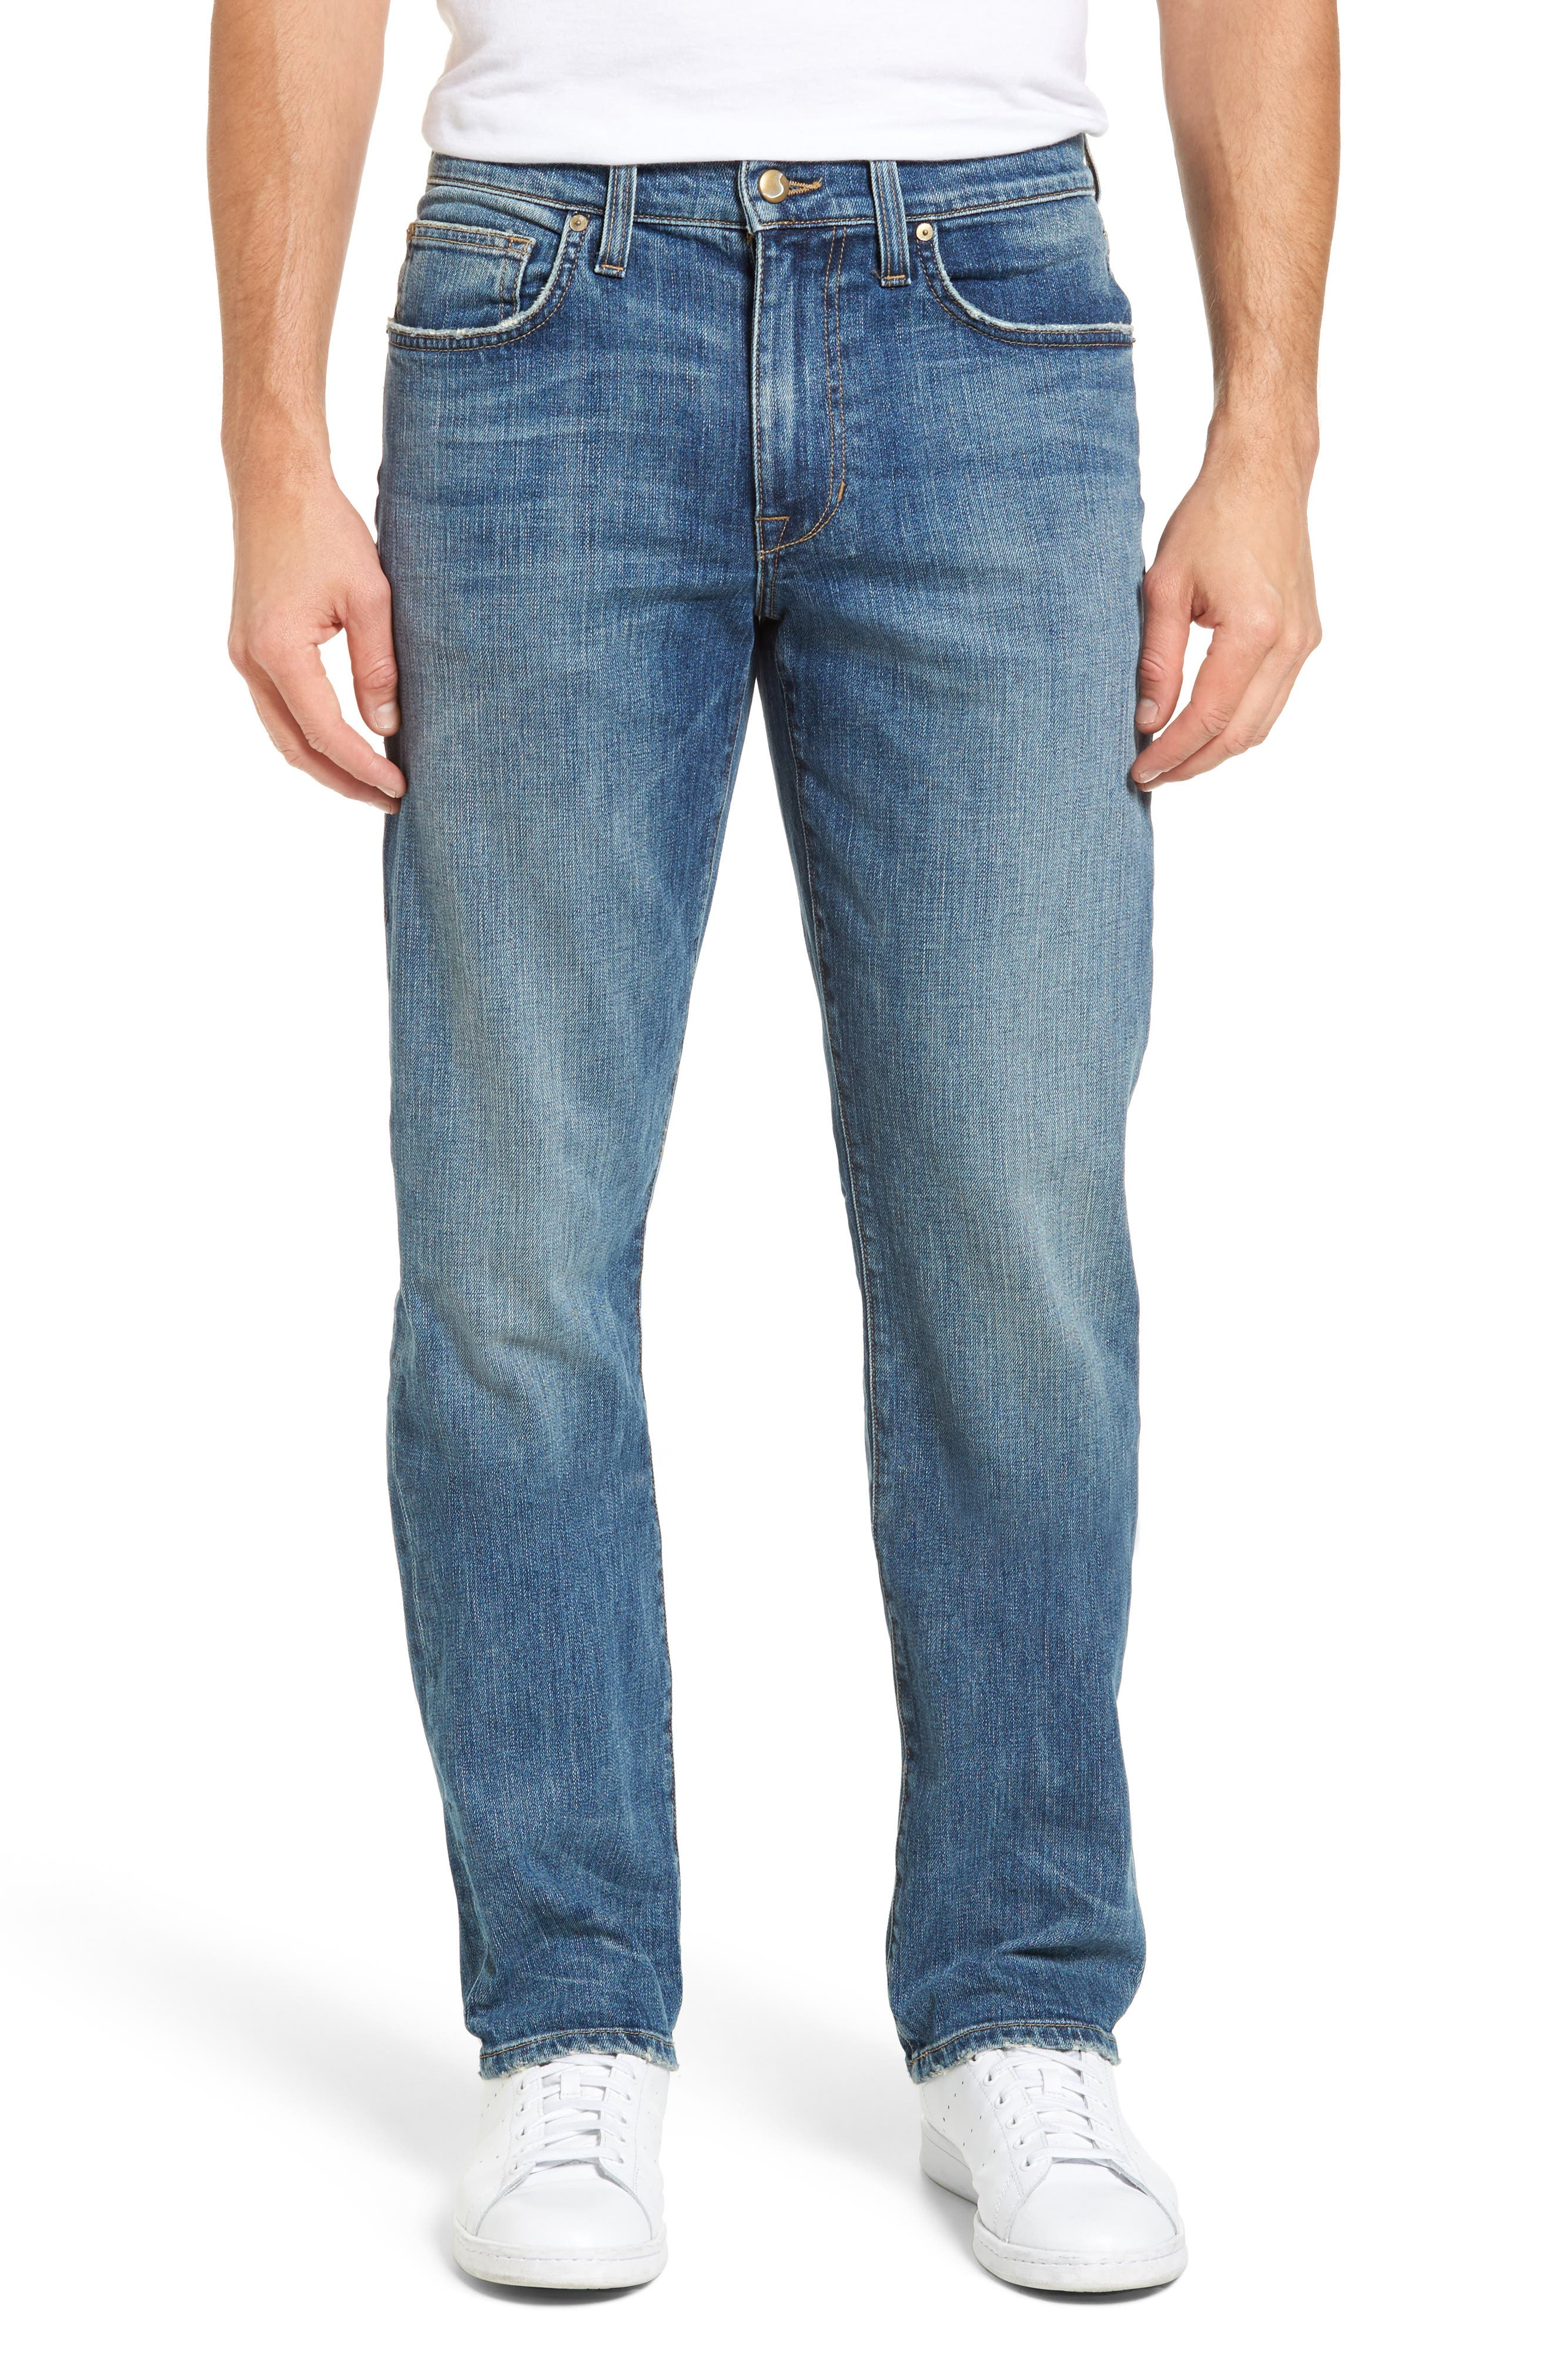 Brixton Slim Straight Fit Jeans,                             Main thumbnail 1, color,                             Sheffield